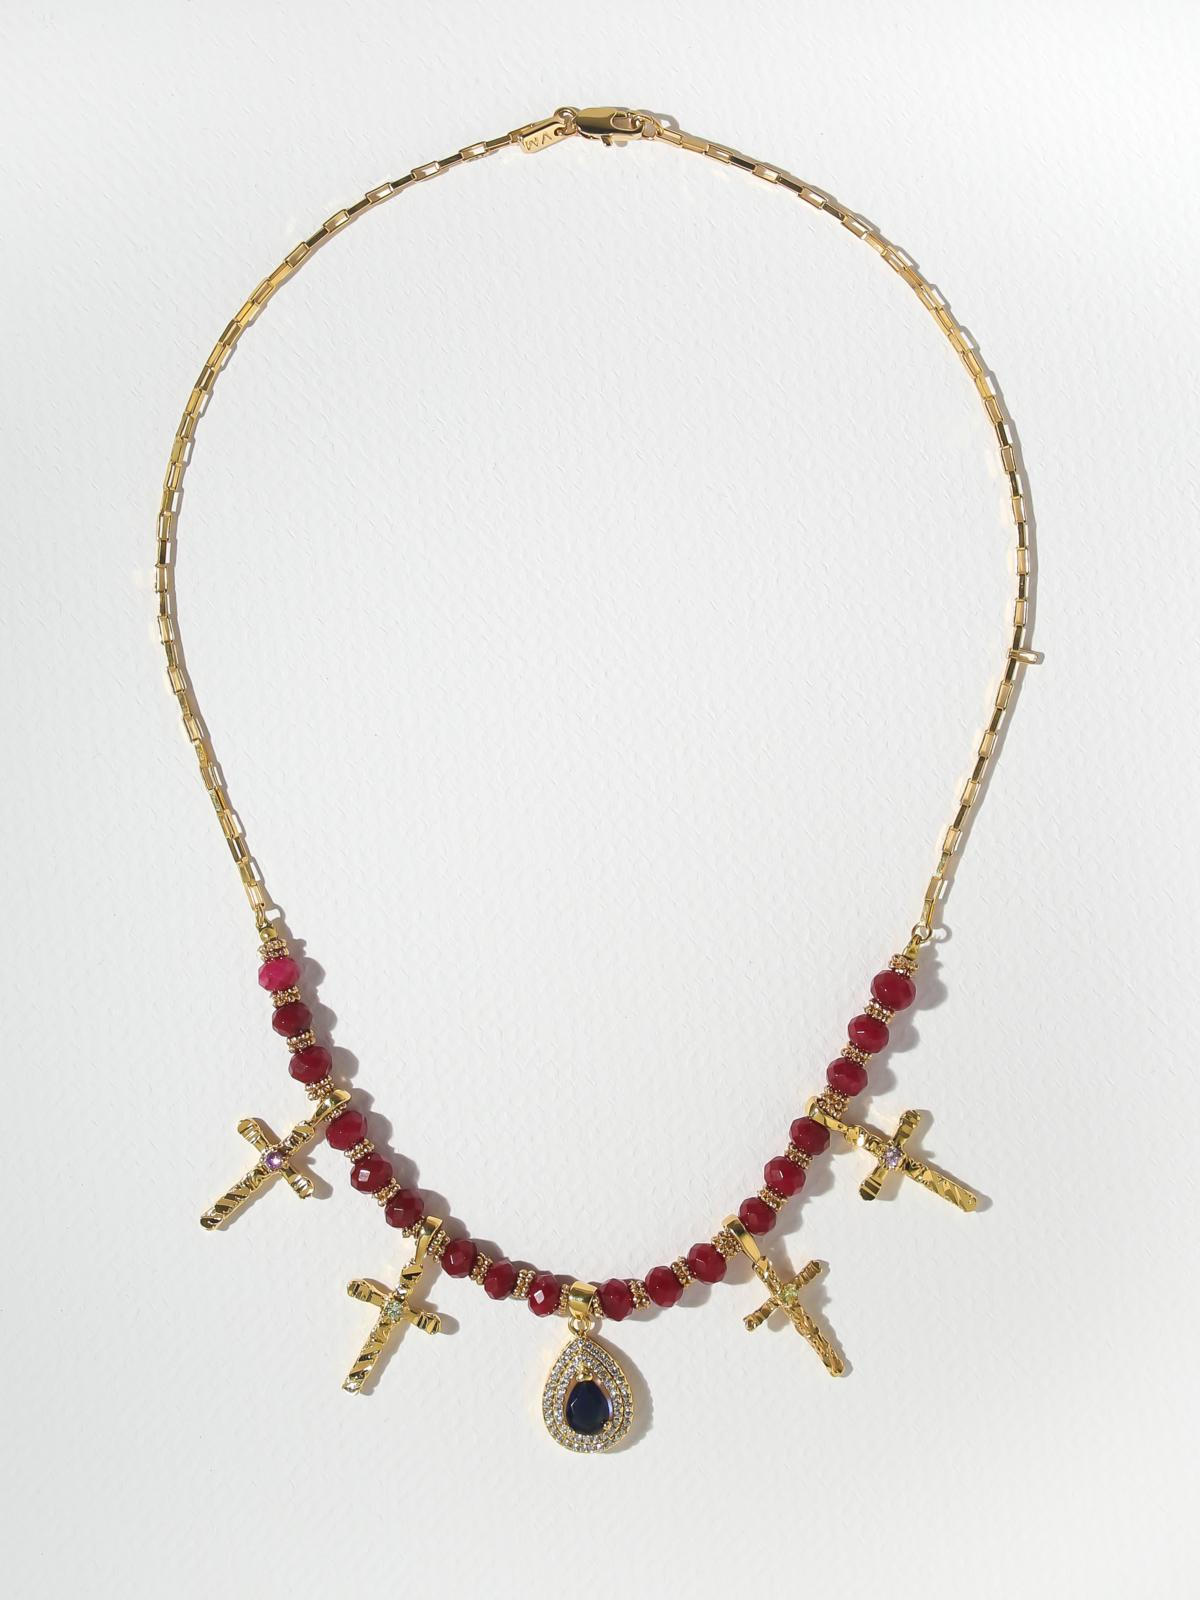 The Katerina Necklace